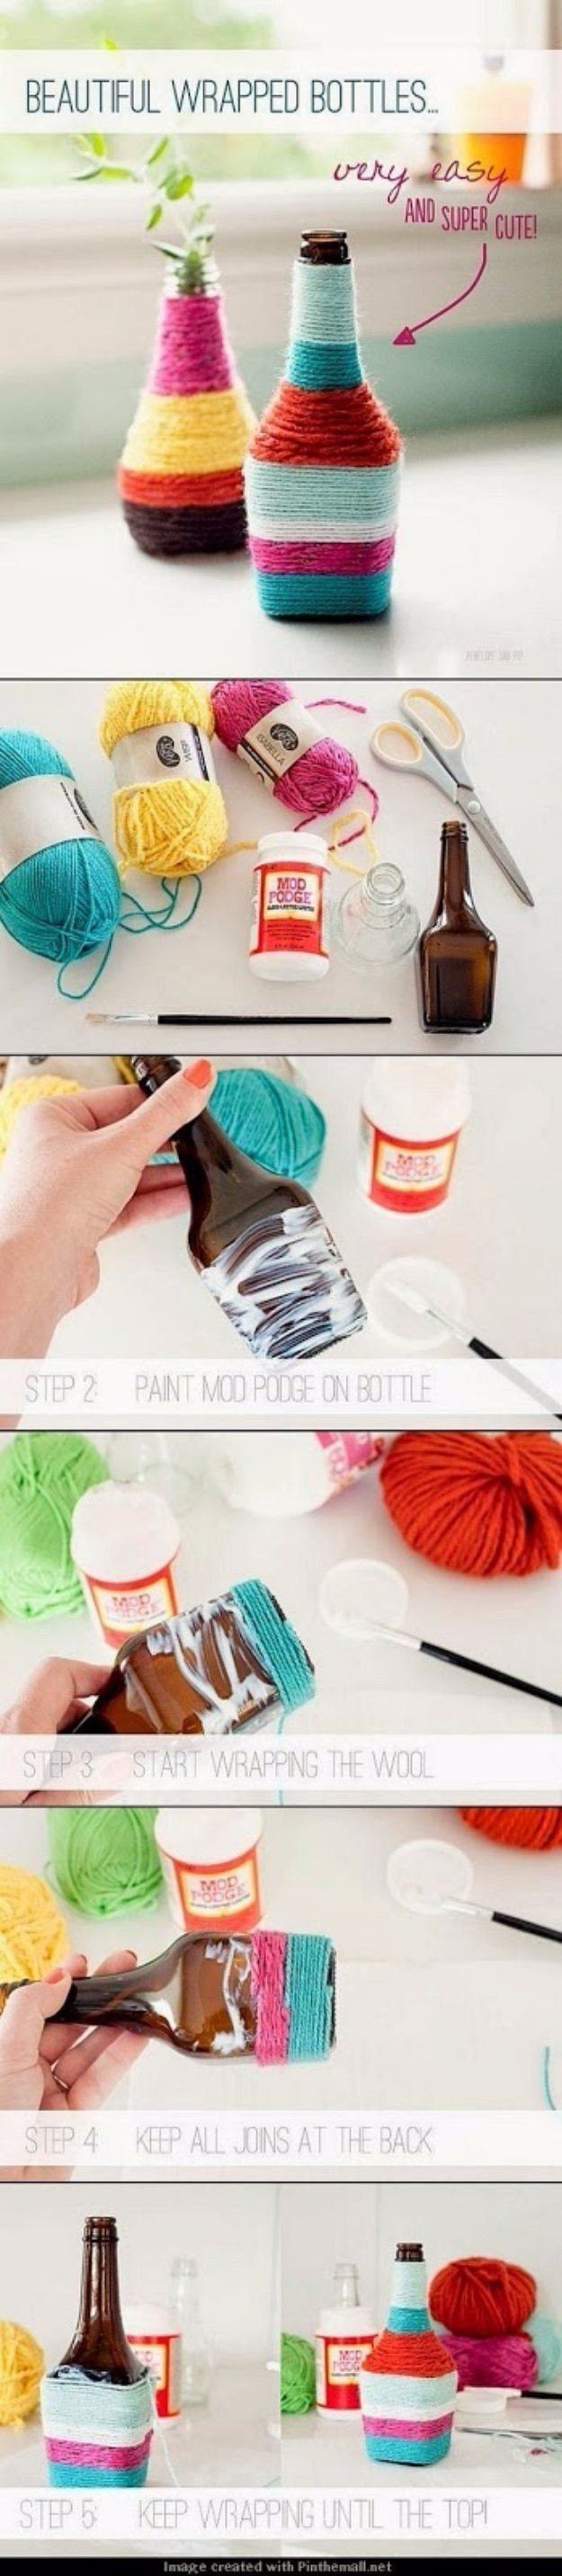 10 Gorgeous Craft Ideas To Make Money 457 best things to make sell images on pinterest christmas 2020